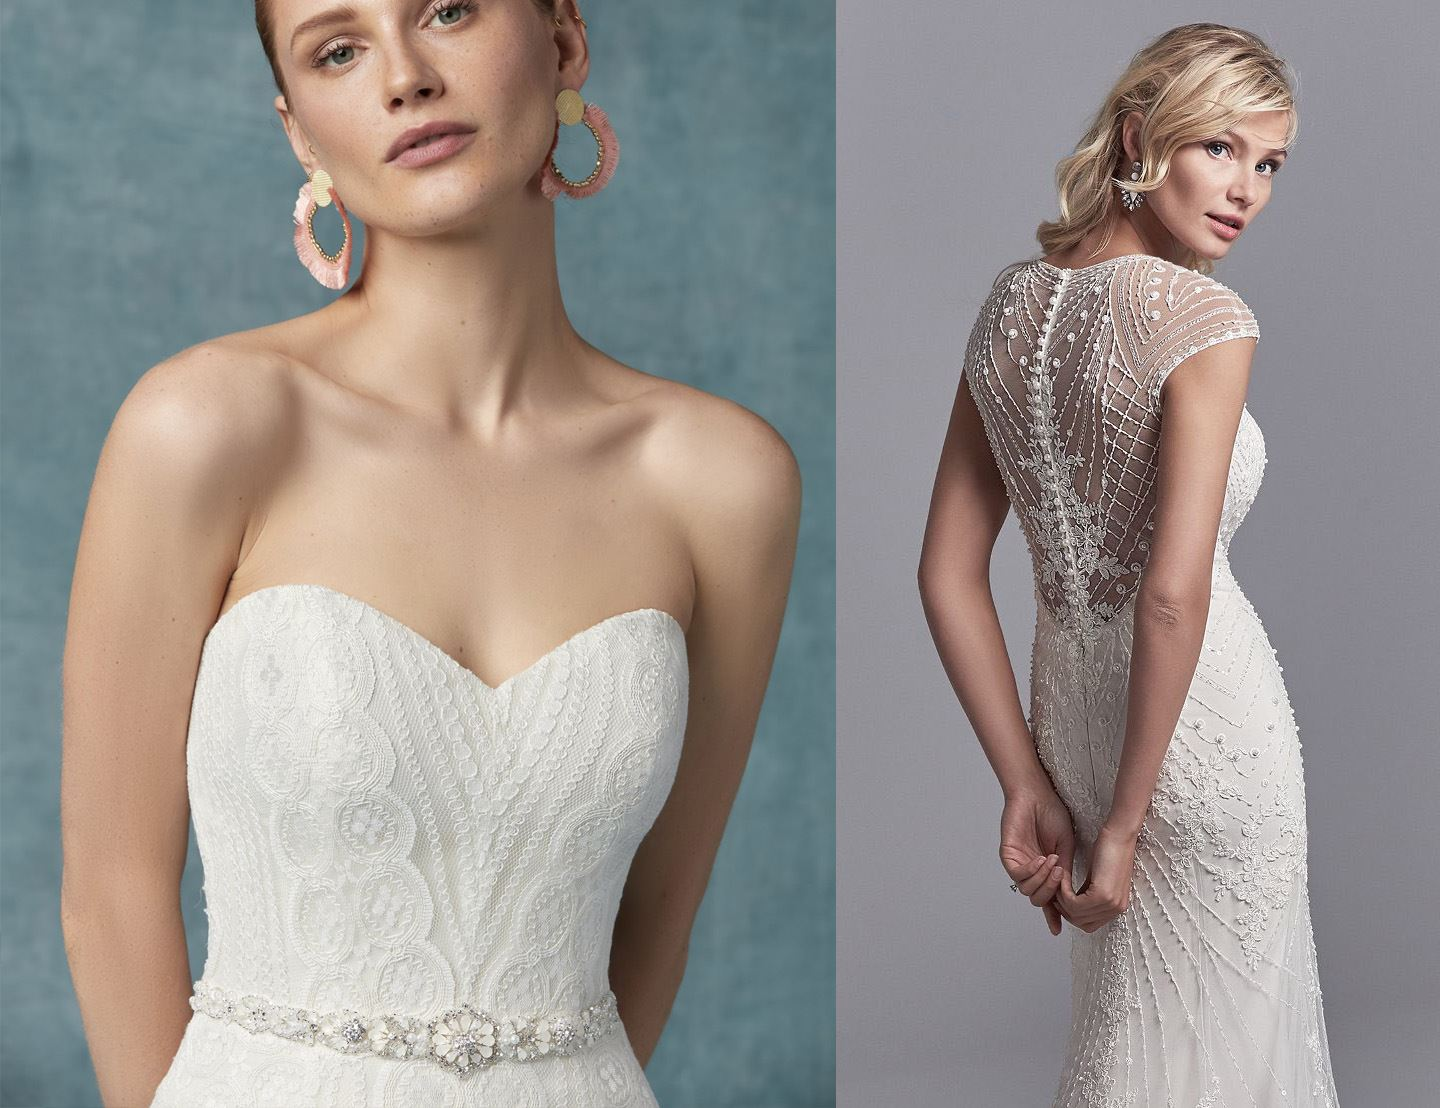 VINTAGE WEDDING GOWNS WITH GEOMETRIC DETAILS Image